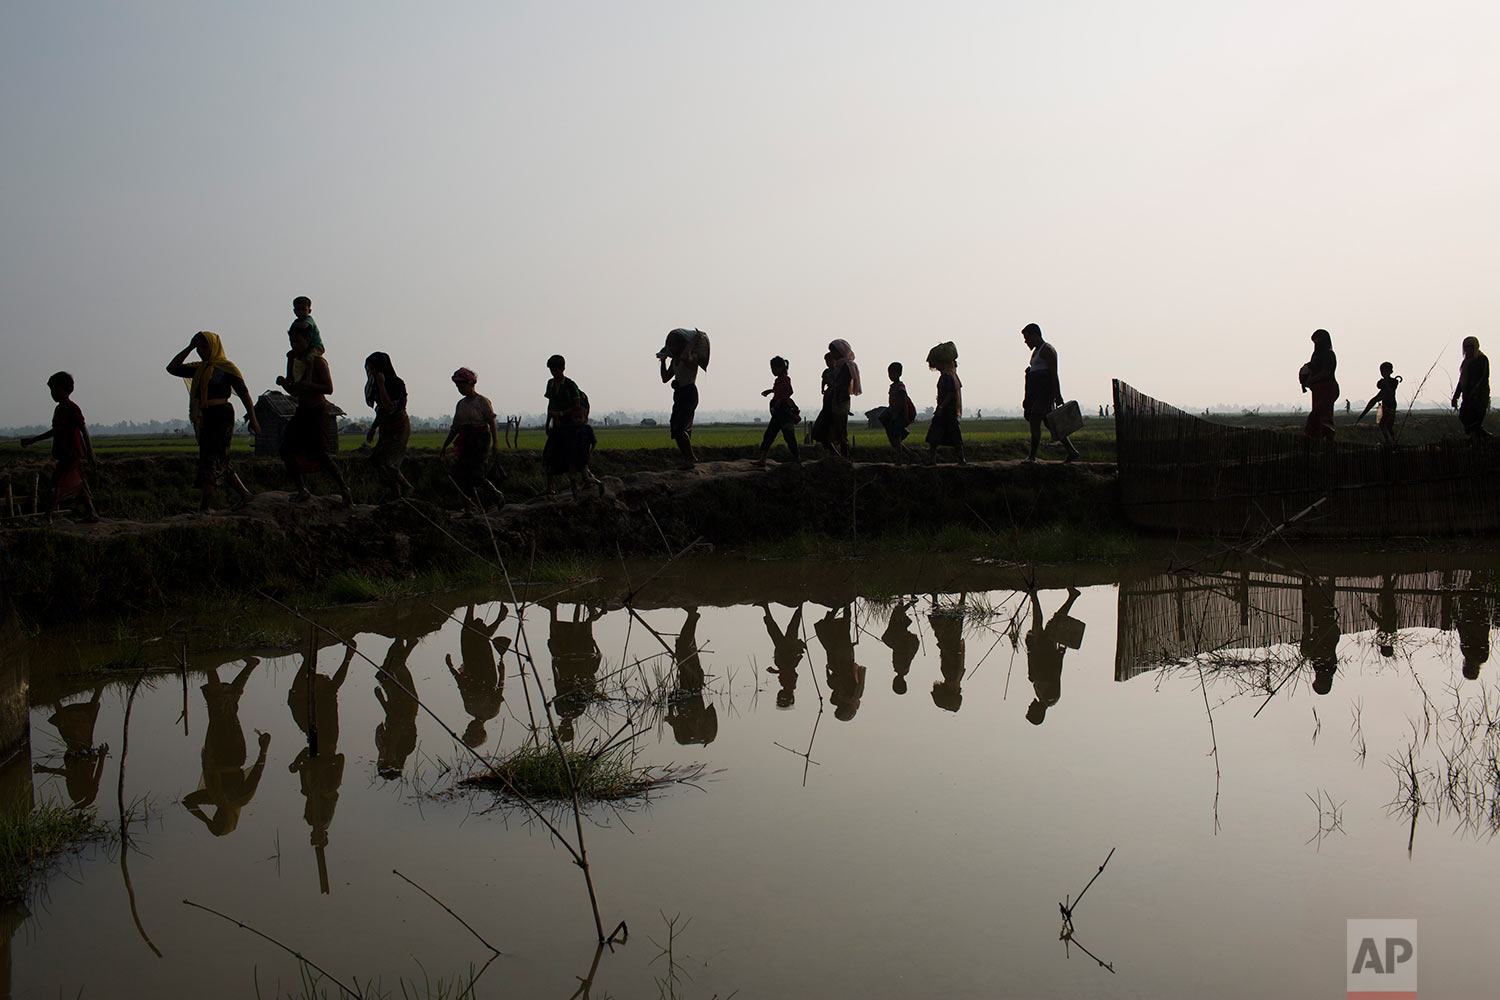 Members of Myanmar's Rohingya ethnic minority walk through rice fields after crossing the border into Bangladesh near Cox's Bazar's Teknaf area, Tuesday, Sept. 5, 2017. (AP Photo/Bernat Armangue)